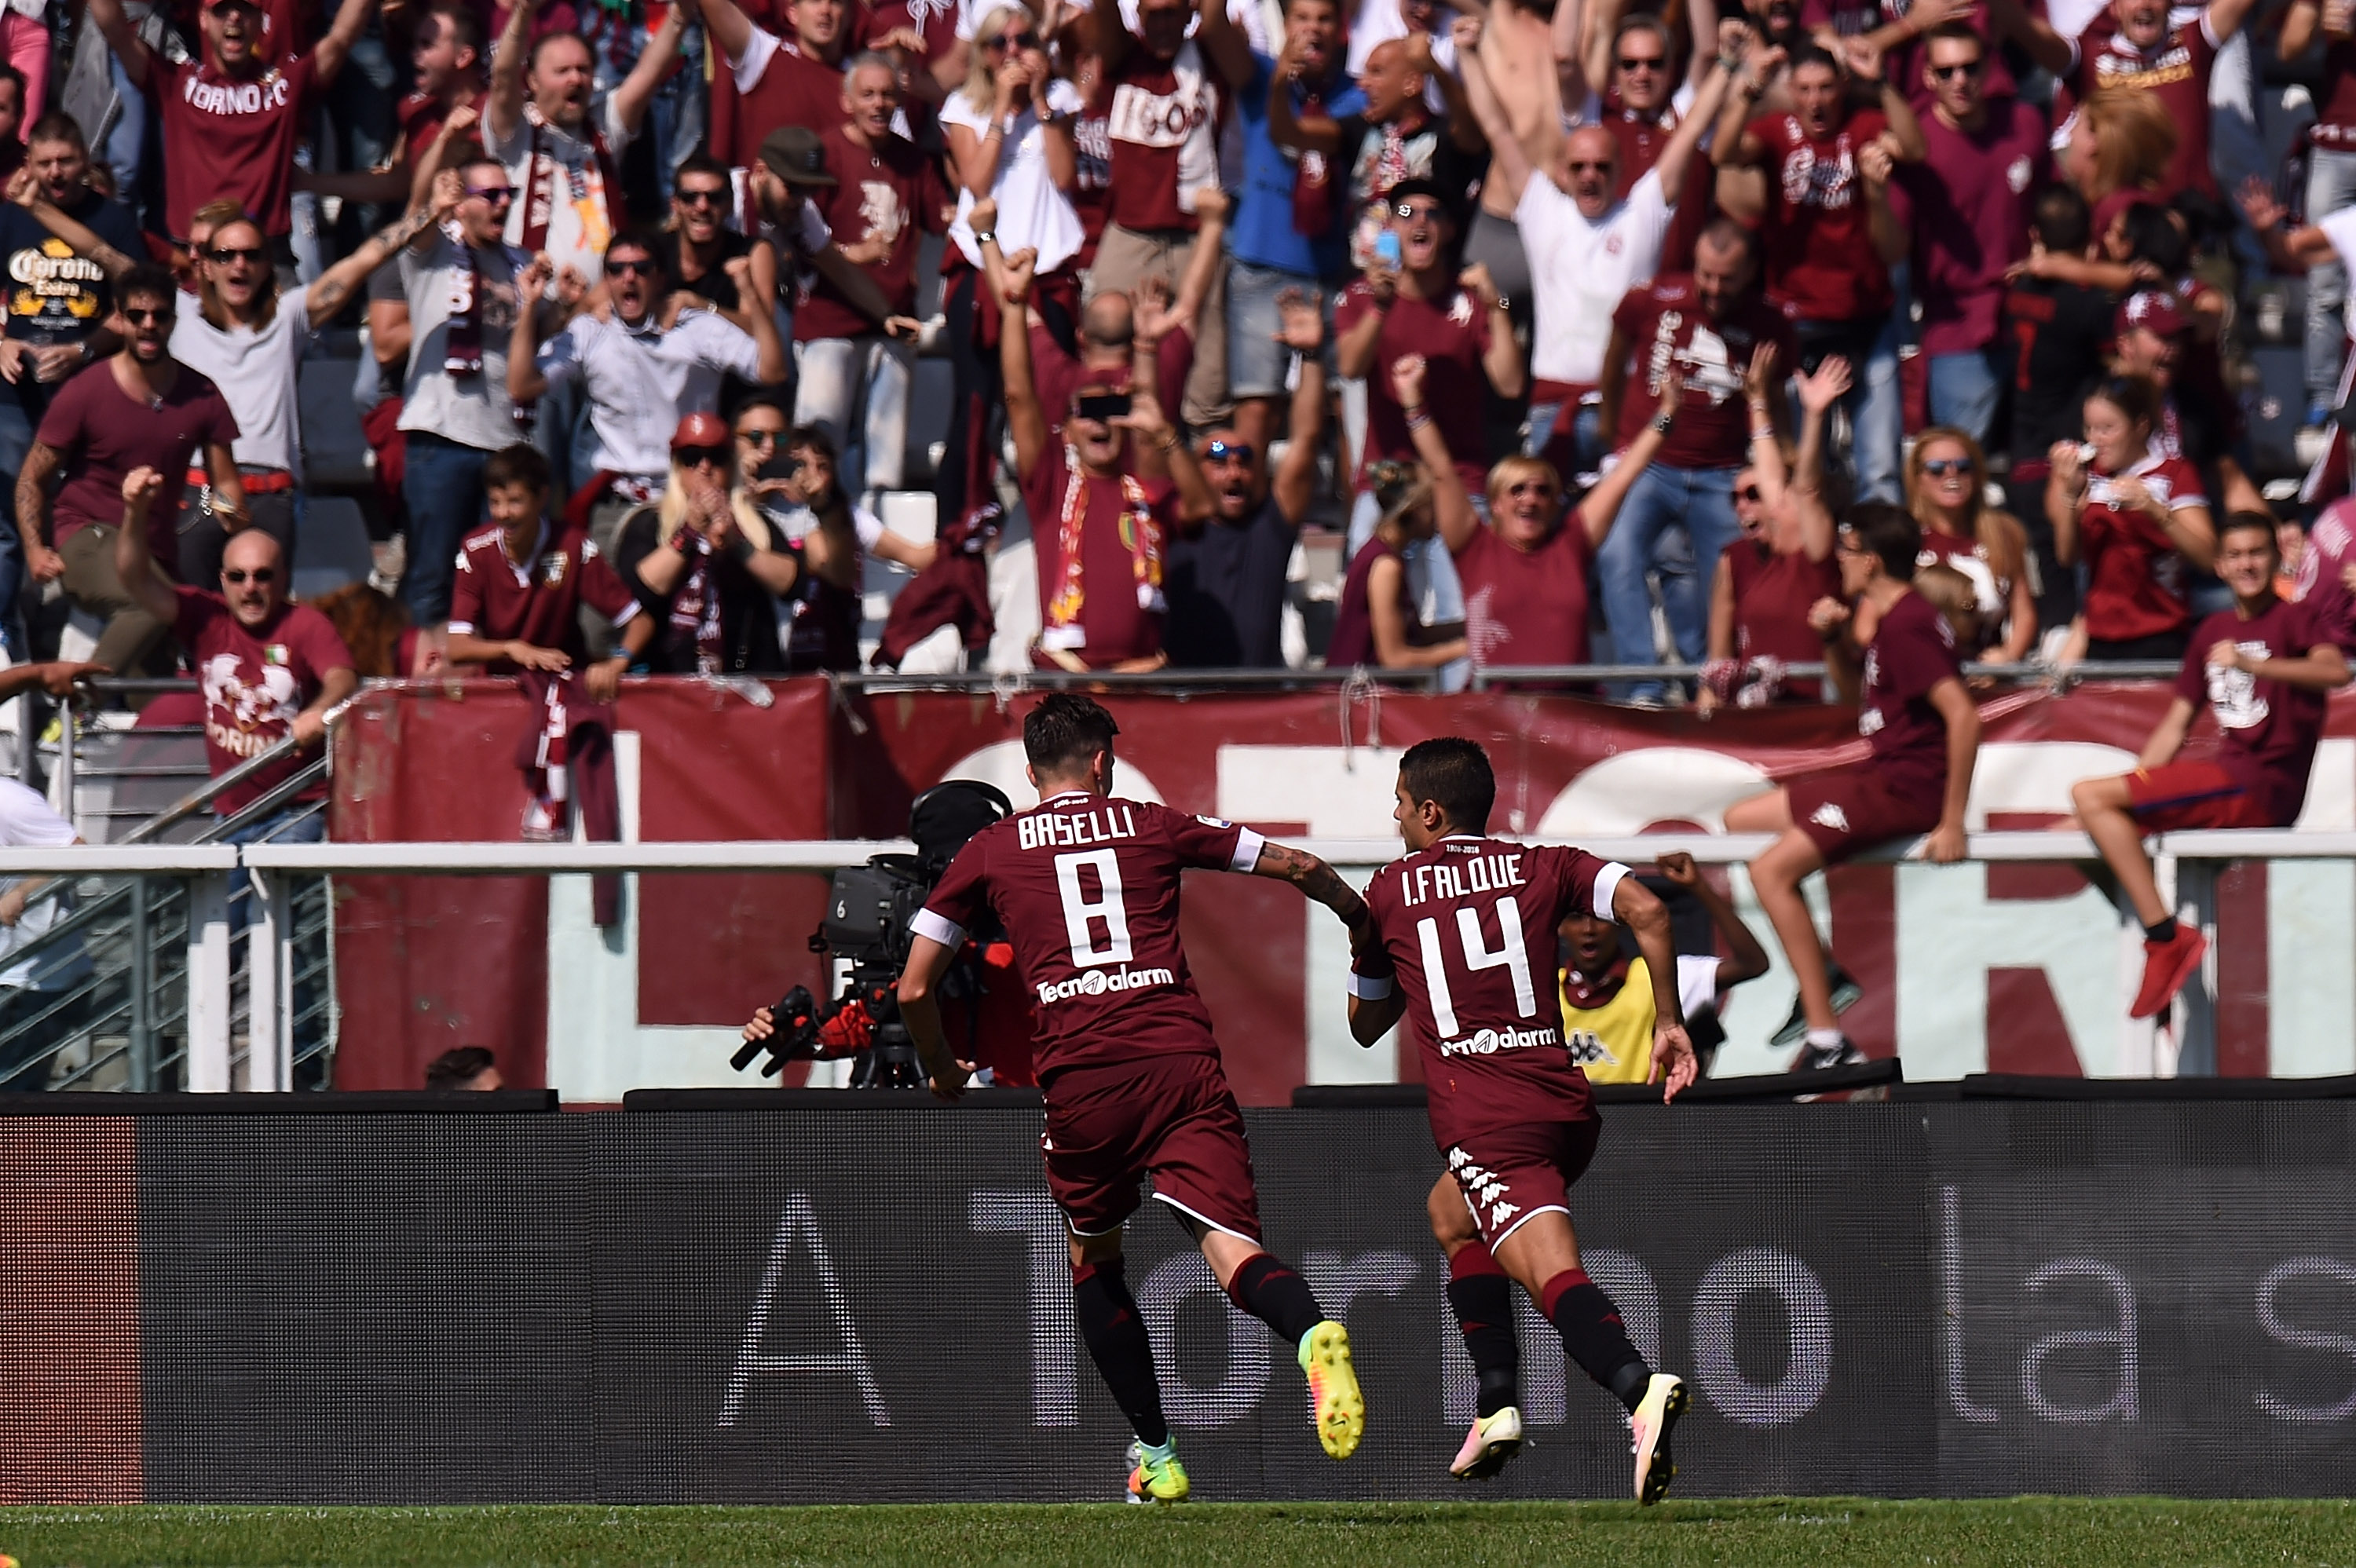 TURIN, ITALY - SEPTEMBER 25: Iago Falque of Torino celebrates after scoring a penalty (2-0) during the Serie A match between FC Torino and AS Roma at Stadio Olimpico di Torino on September 25, 2016 in Turin, Italy. (Photo by Tullio M. Puglia/Getty Images)